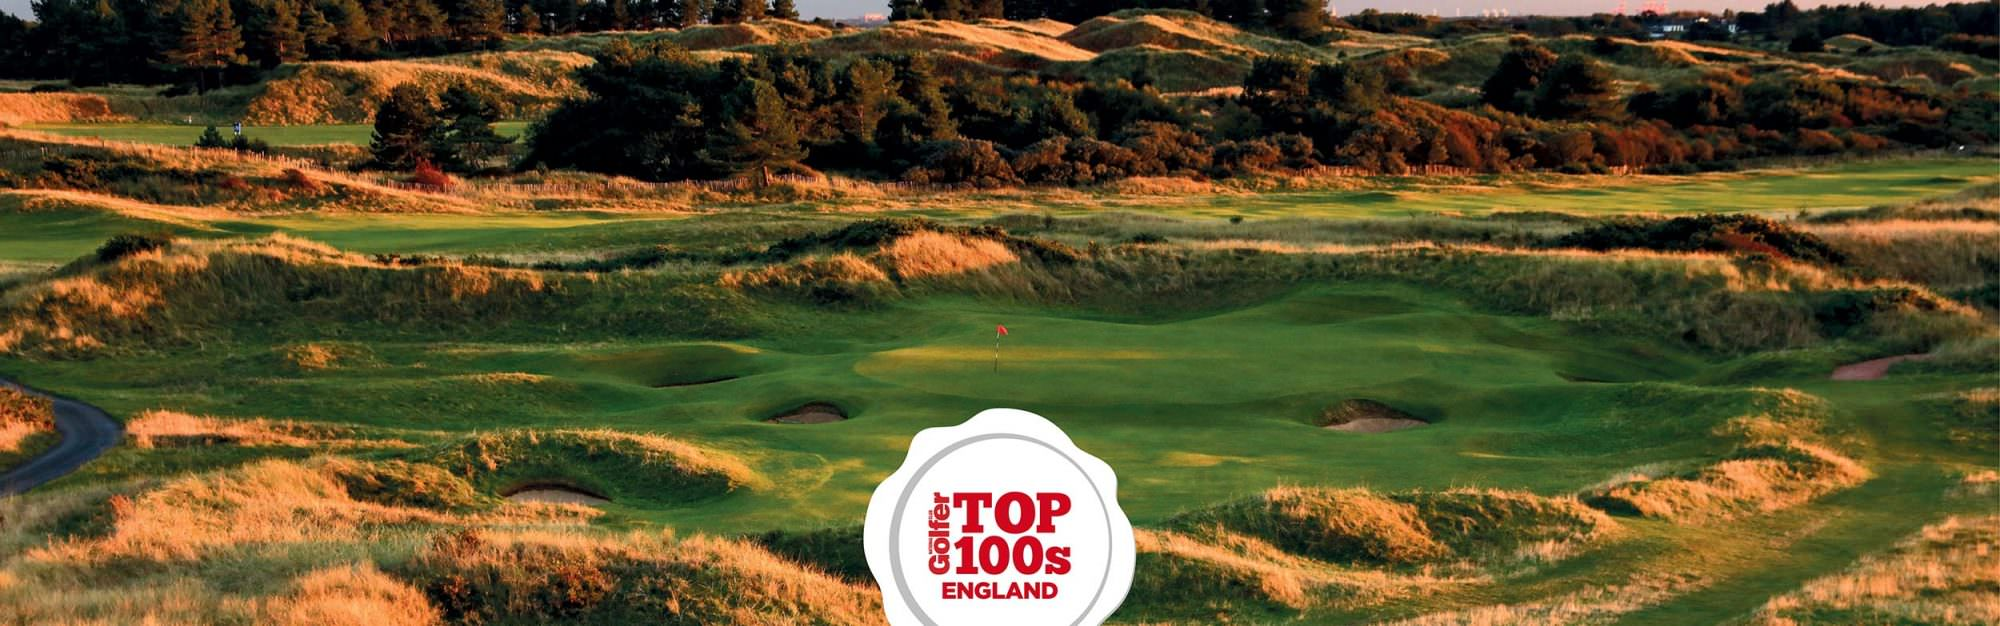 NCG Top 100s: Why we're updating our list of the best golf courses in England